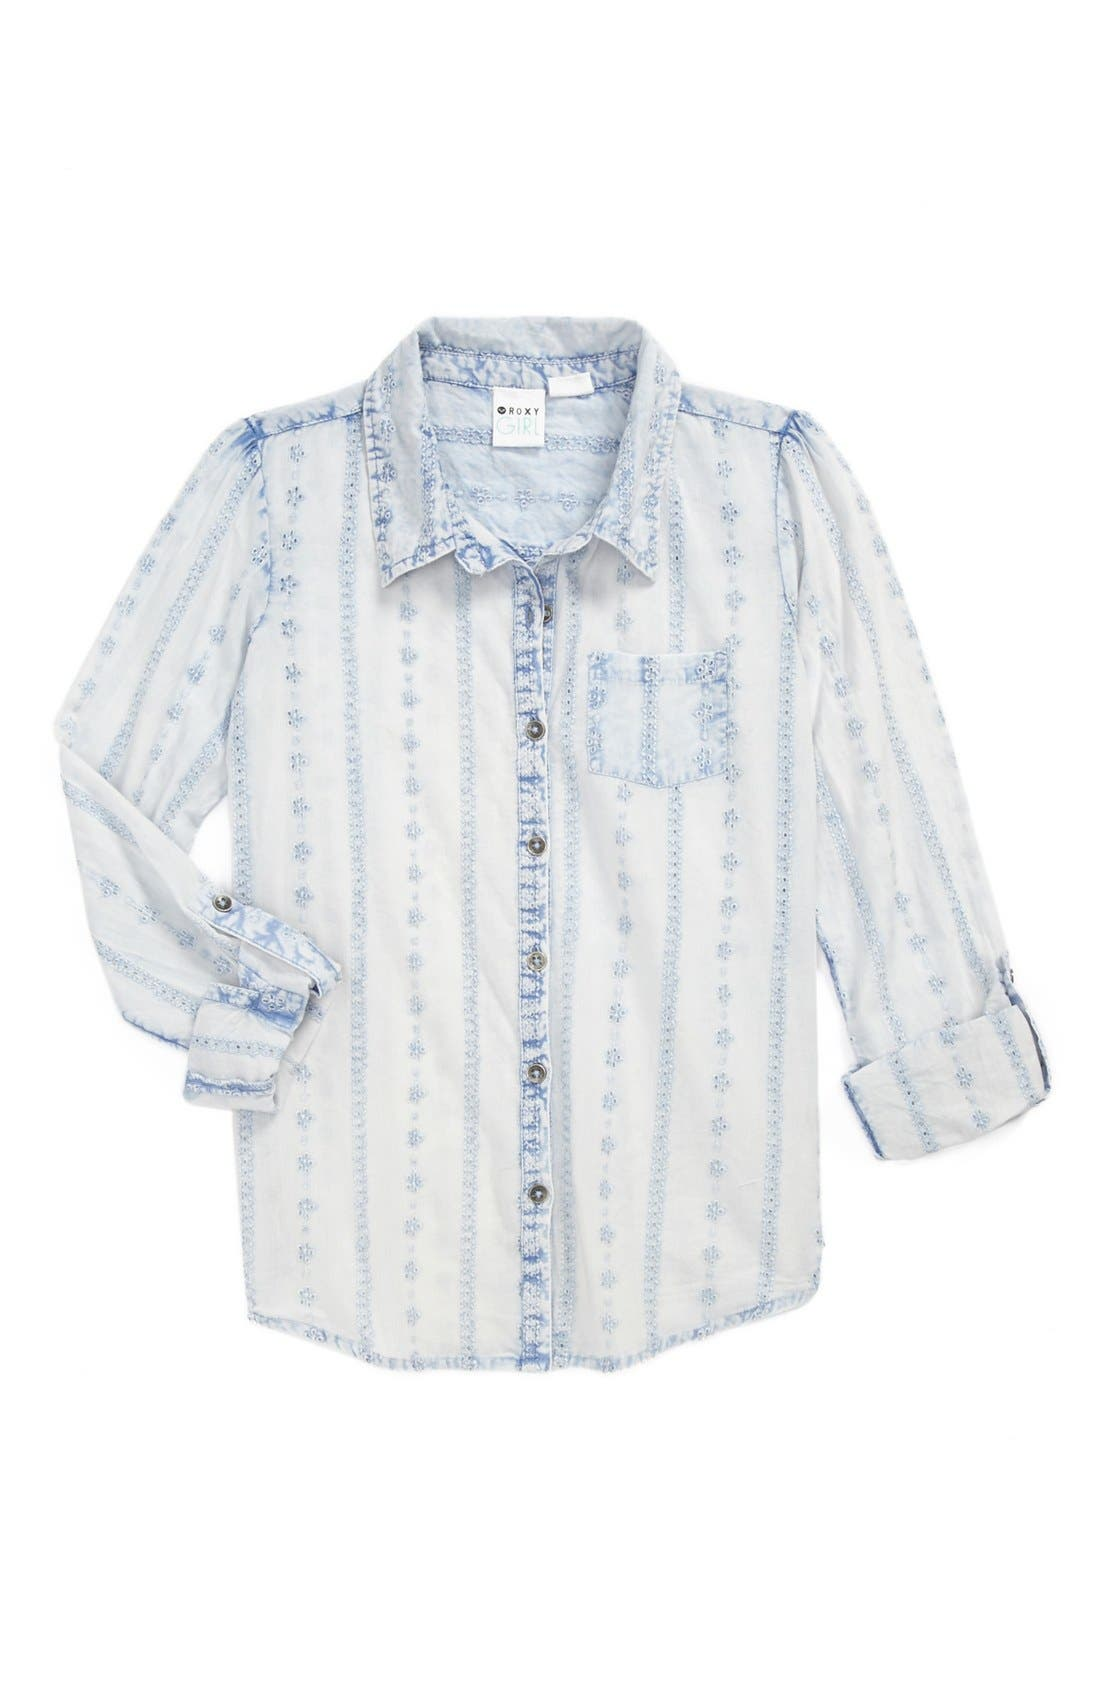 Alternate Image 1 Selected - 'Wise Up' Washed Woven Shirt (Big Girls)